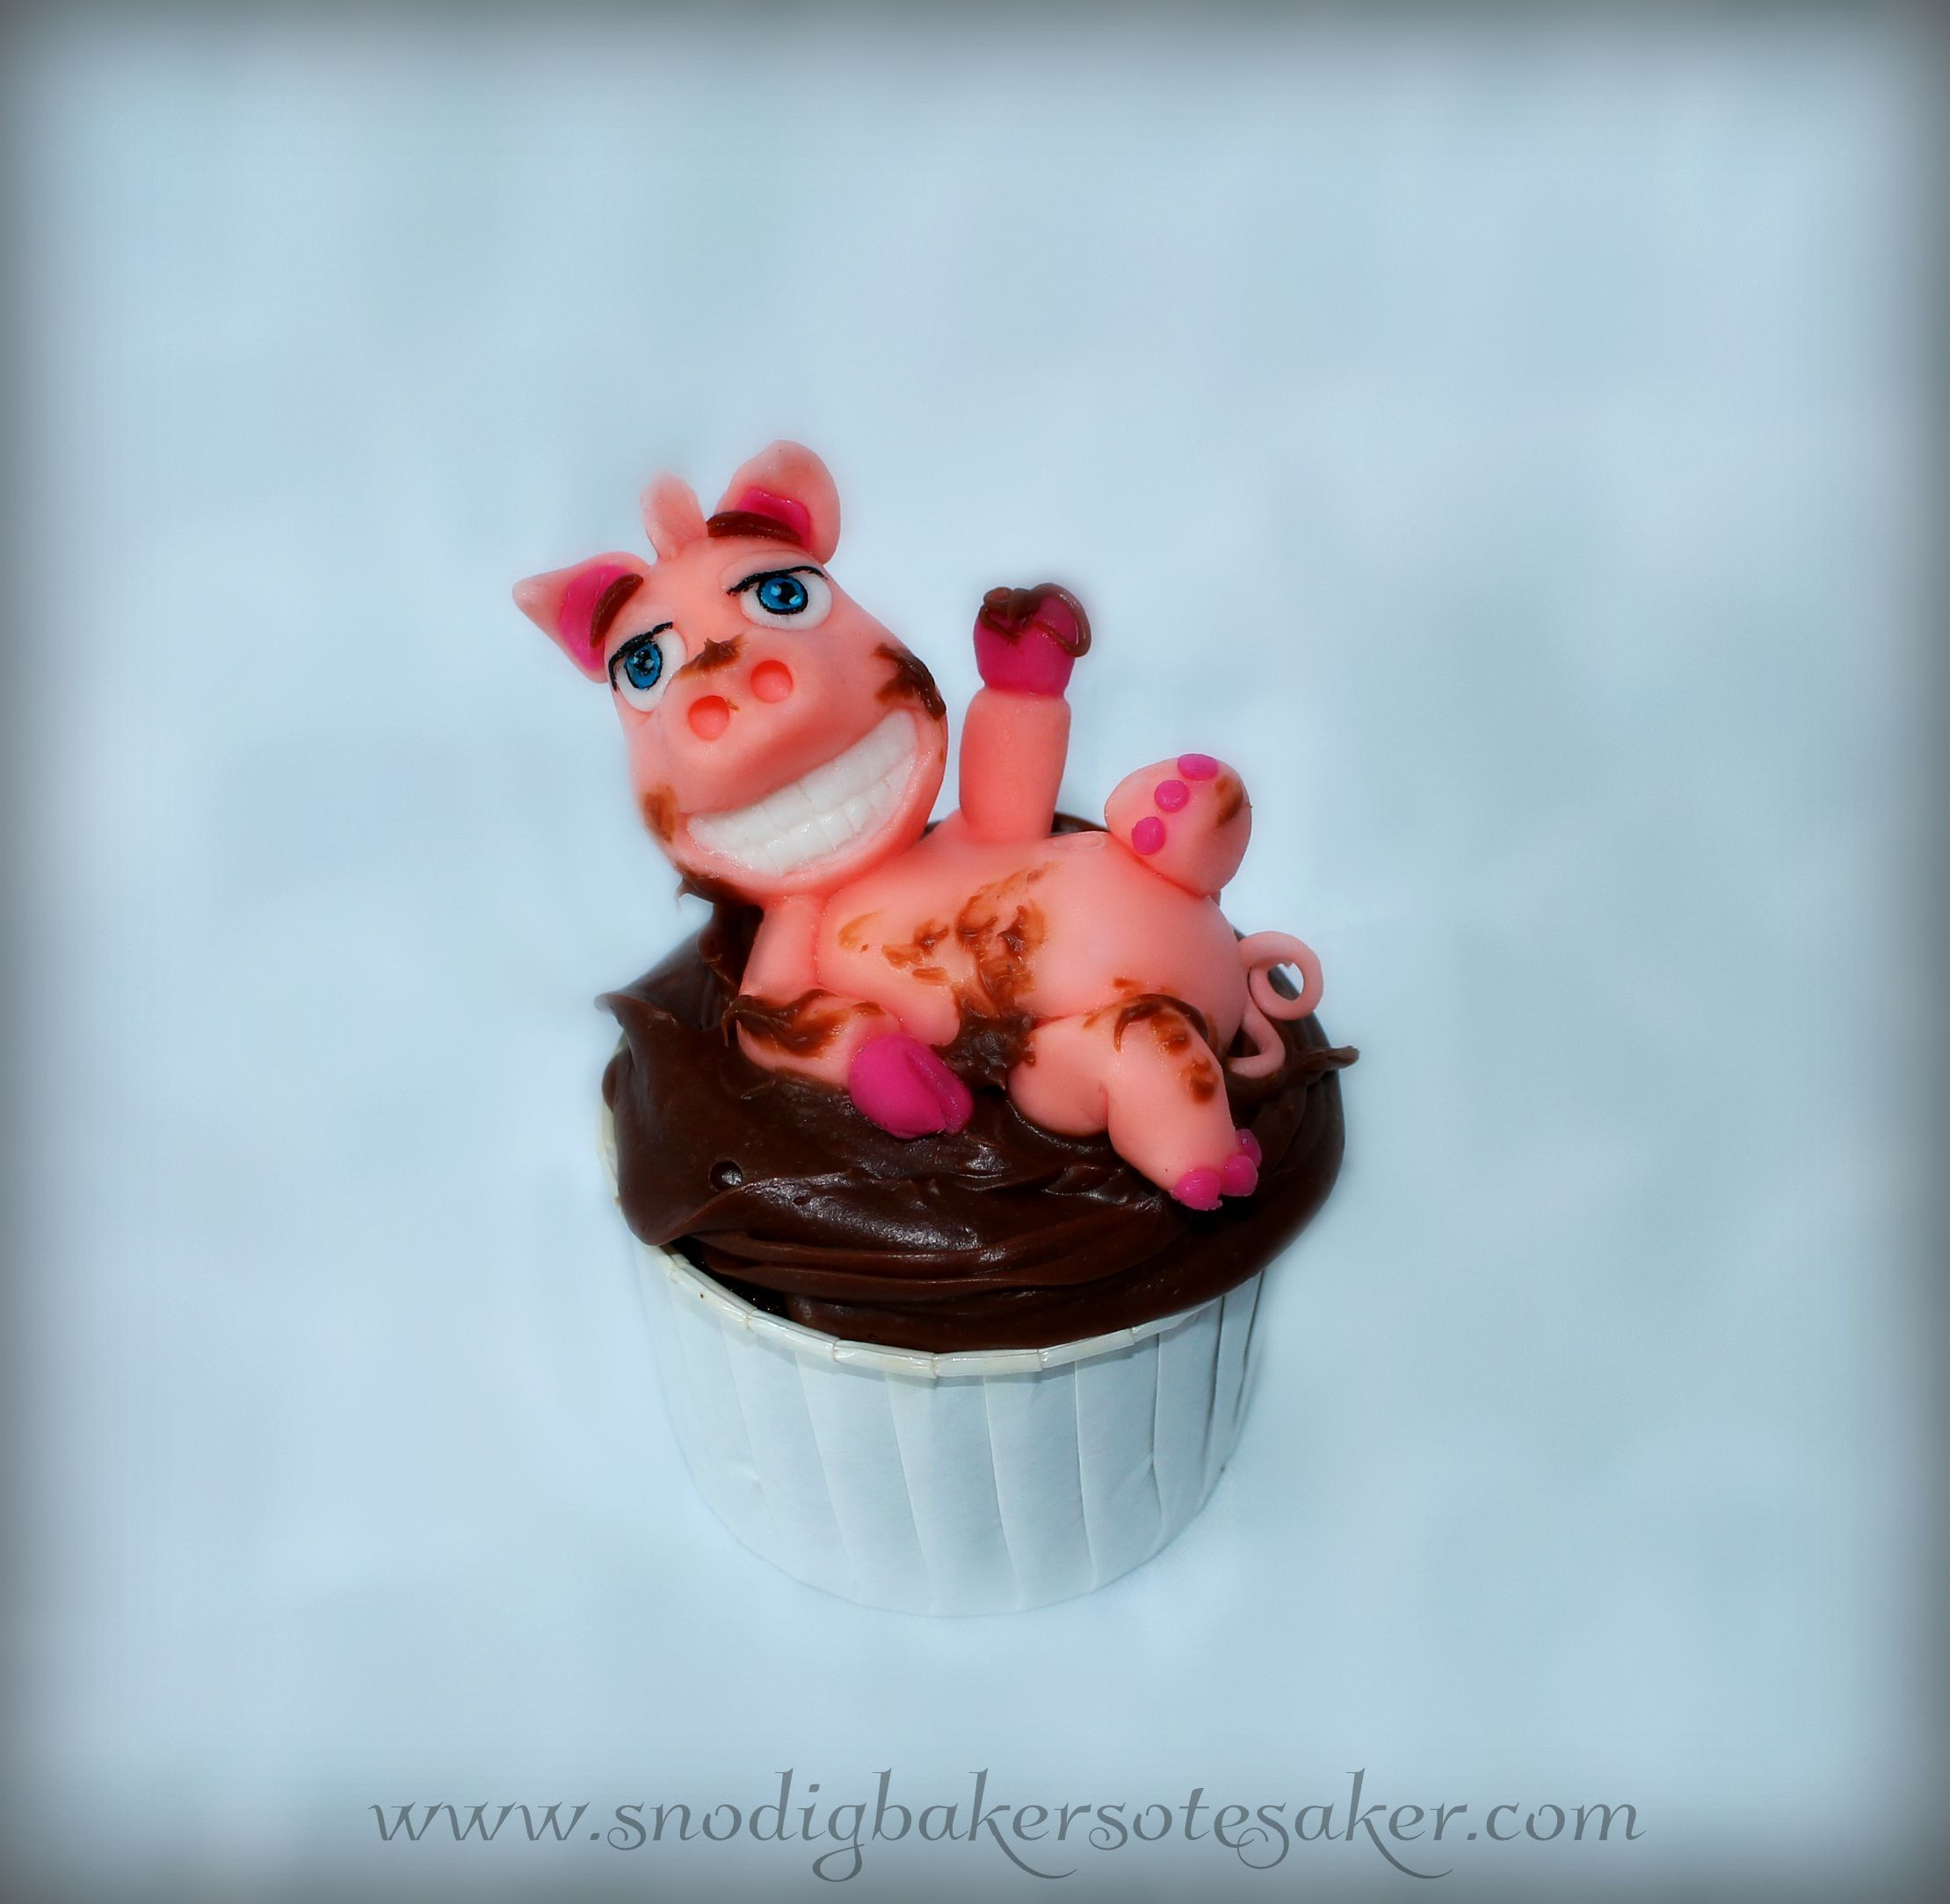 Happy as a pig in mud! Smiling fondant pig enjoying his bath in fudge :) www.snodigbakersotesaker.com